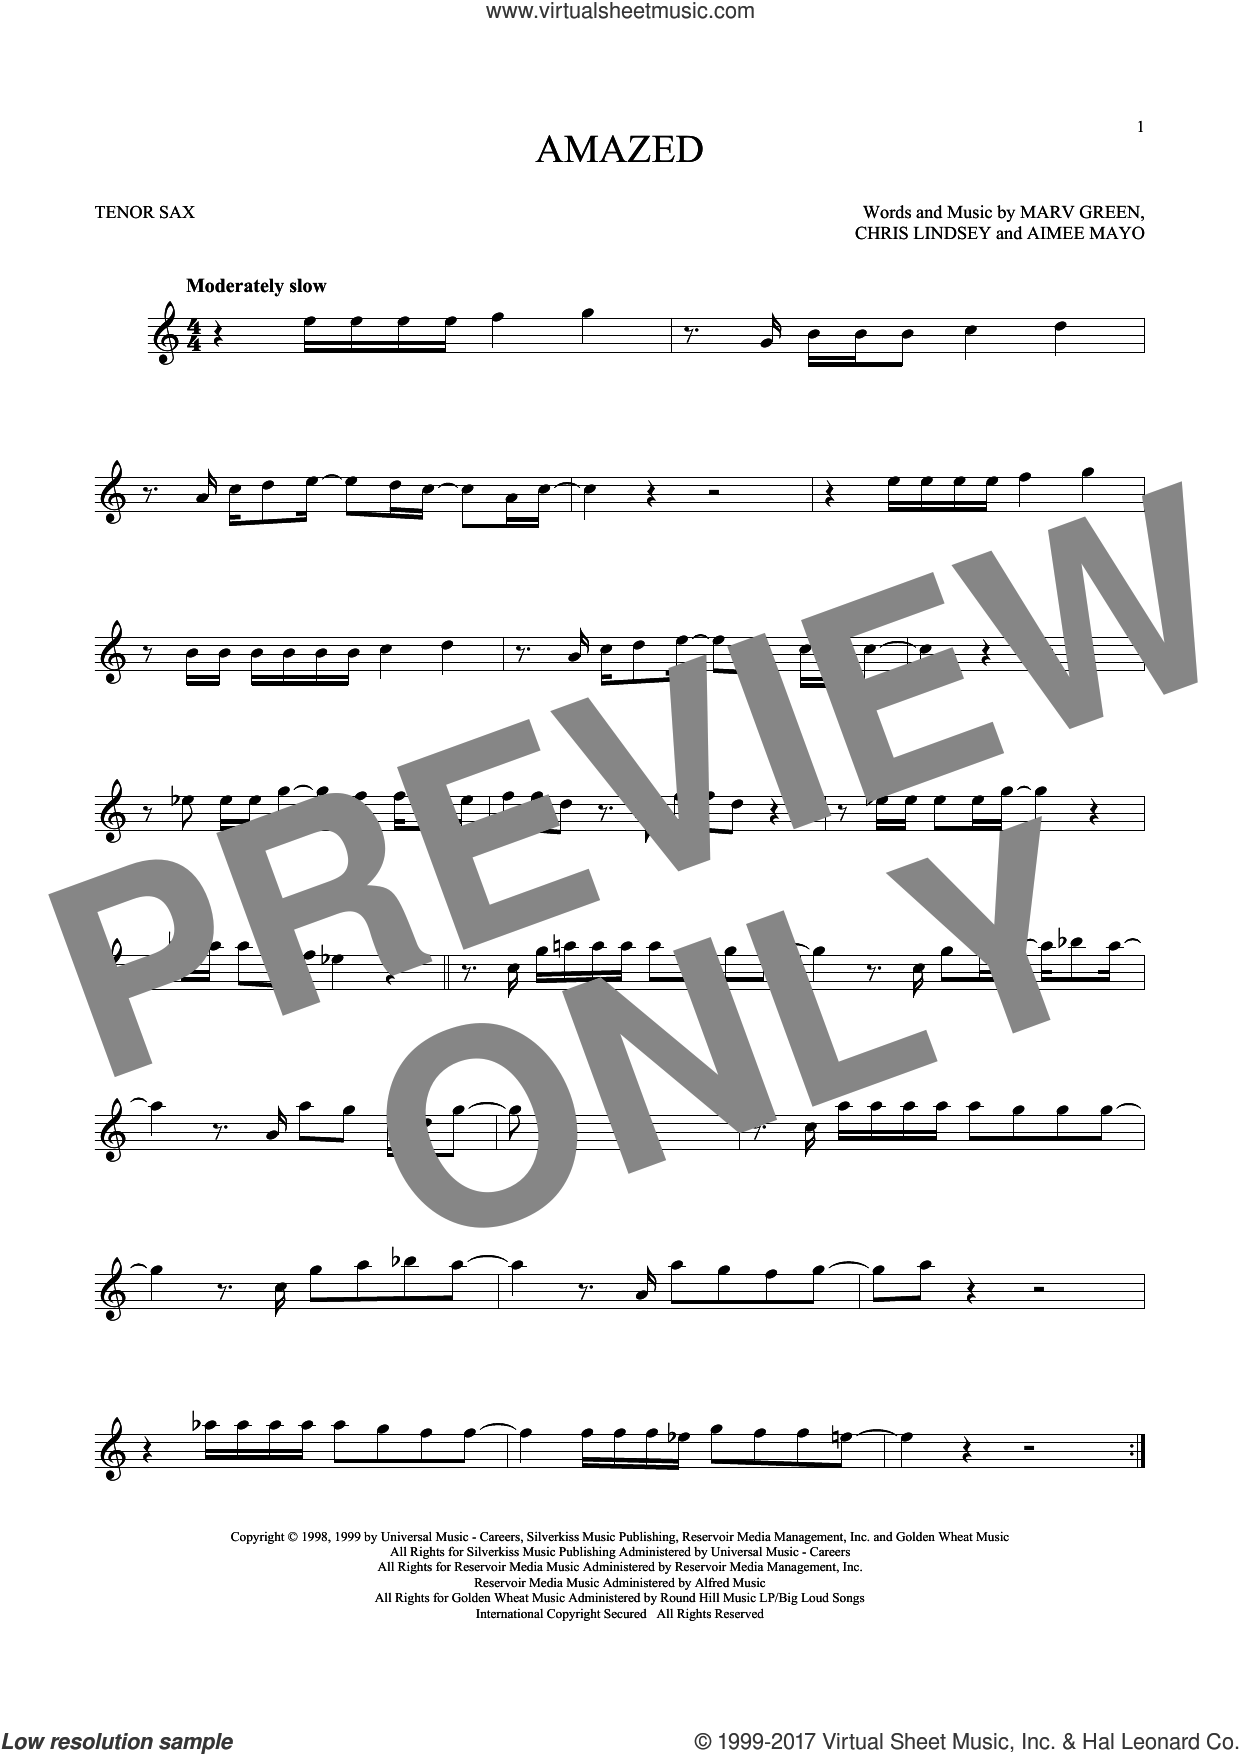 Amazed sheet music for tenor saxophone solo by Lonestar, Aimee Mayo, Chris Lindsey and Marv Green, wedding score, intermediate skill level